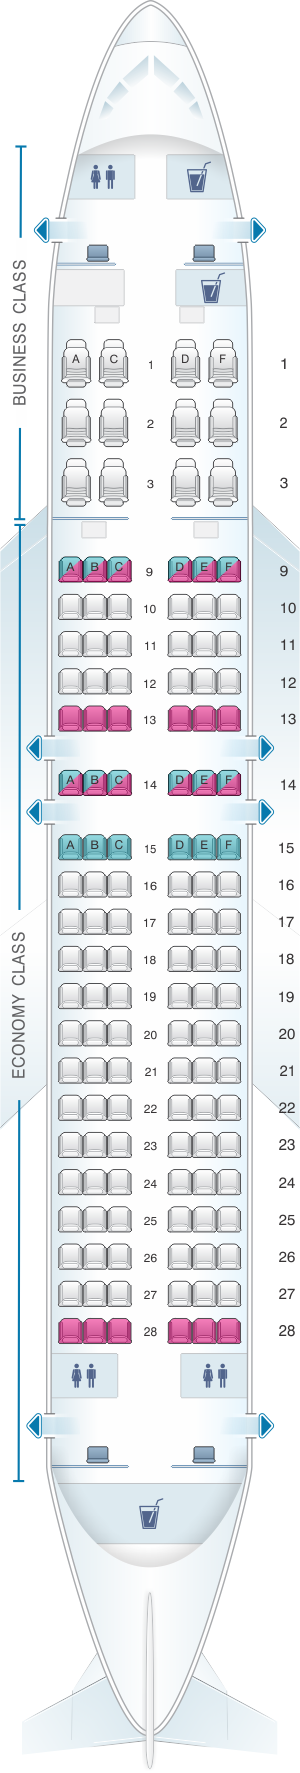 Seat map for Qatar Airways Airbus A320 200 144pax